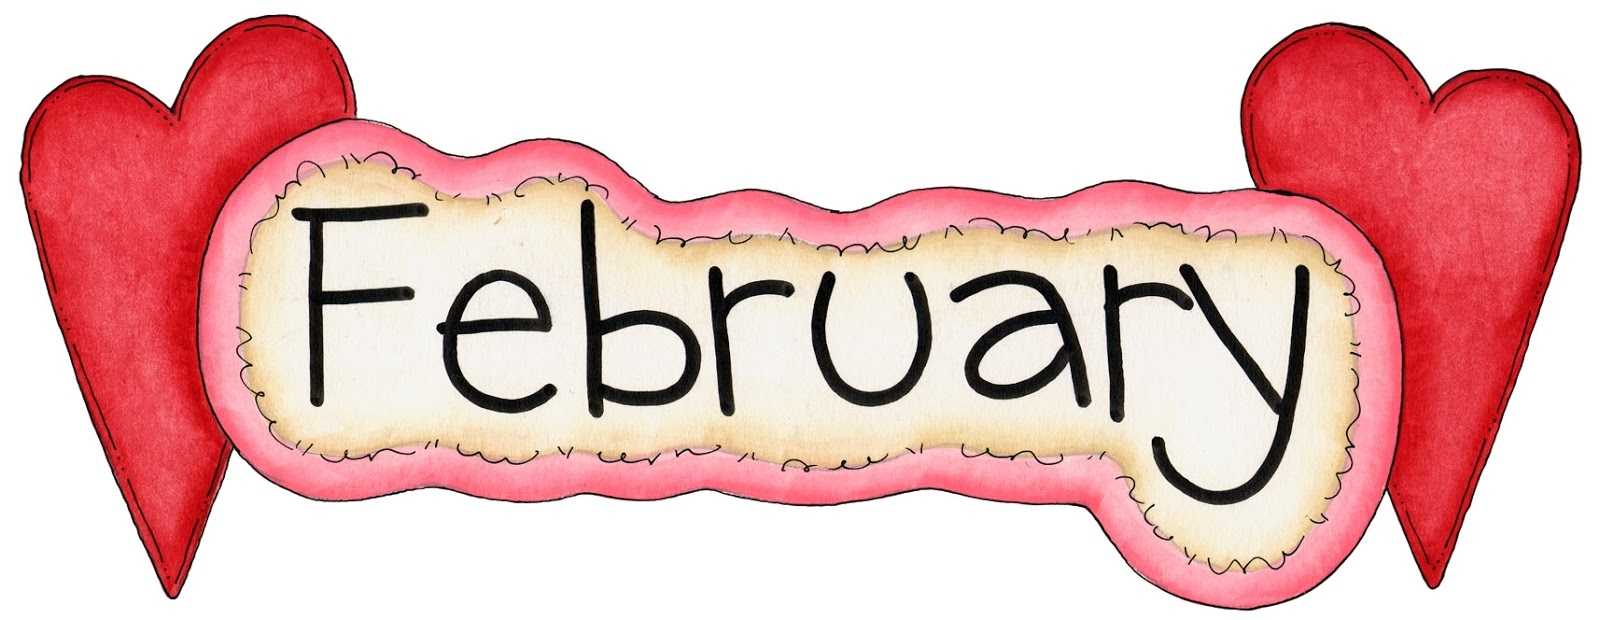 February clipart cutesy. Best of collection digital